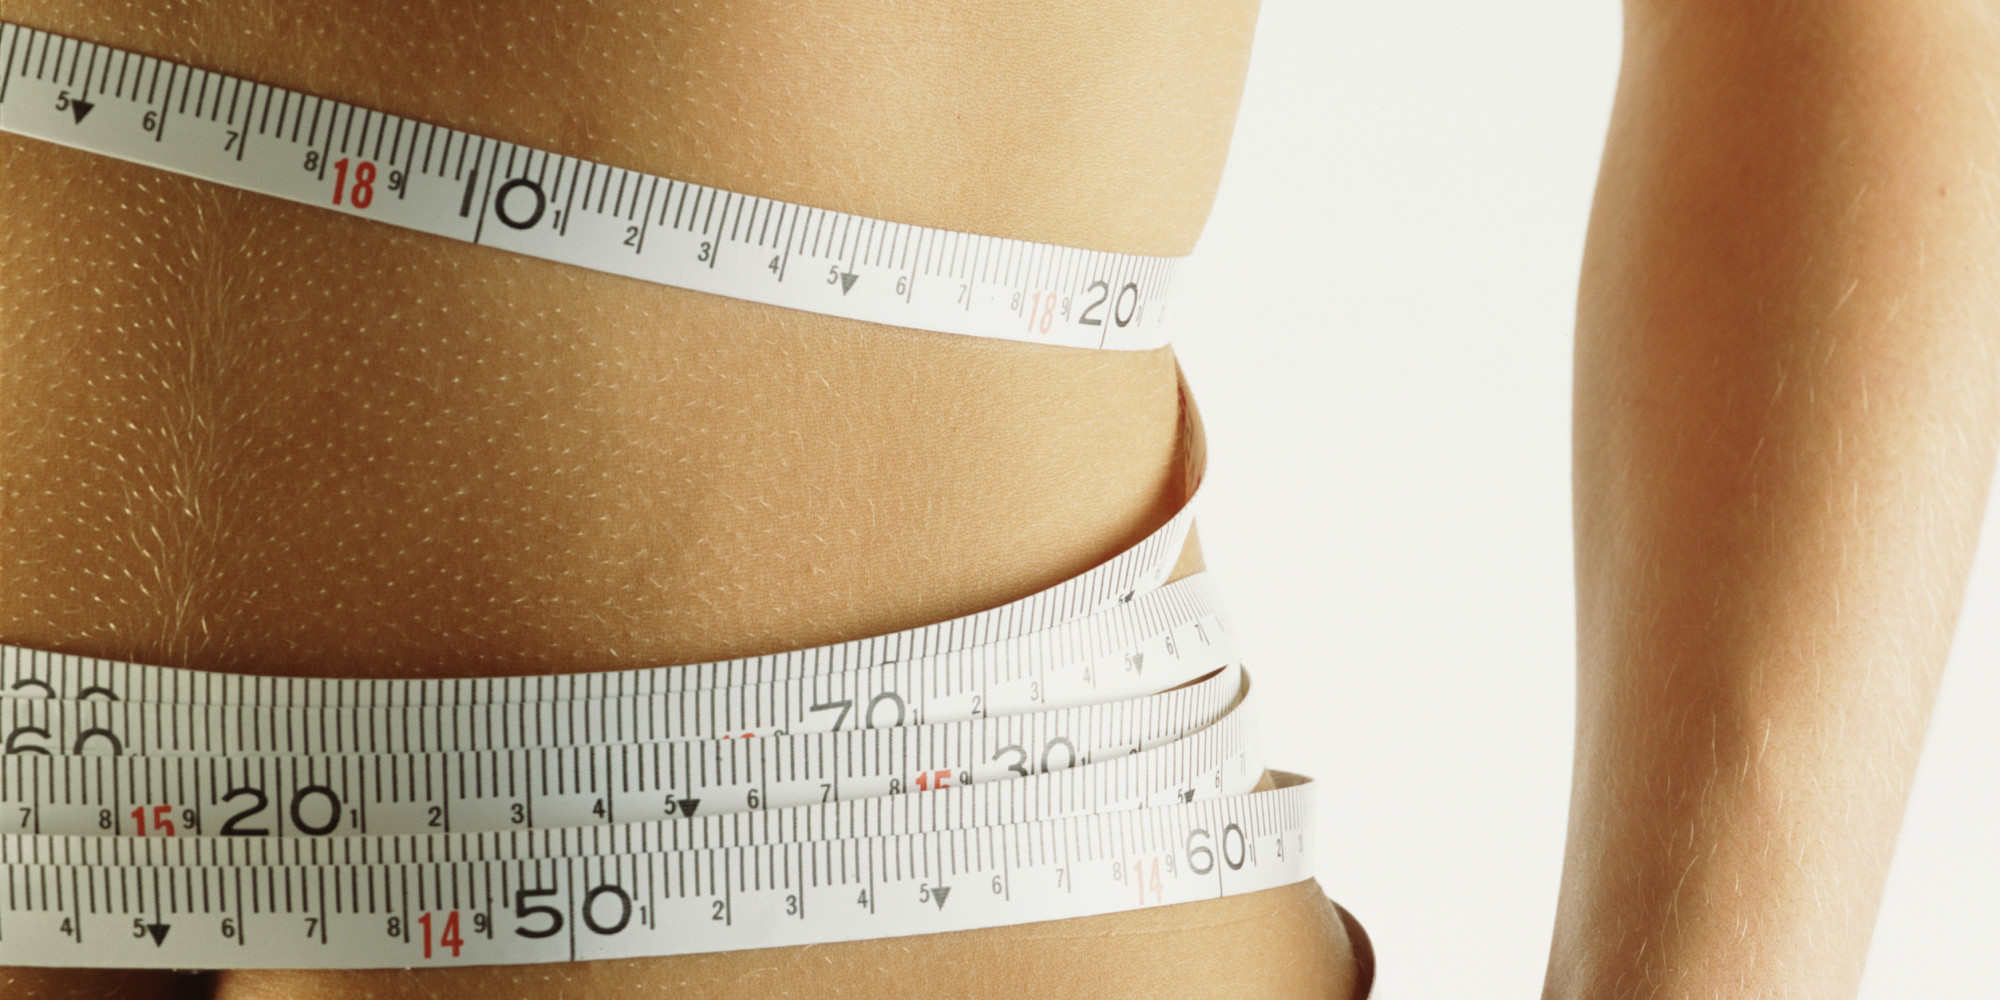 Teen body image rises with plastic surgery rates